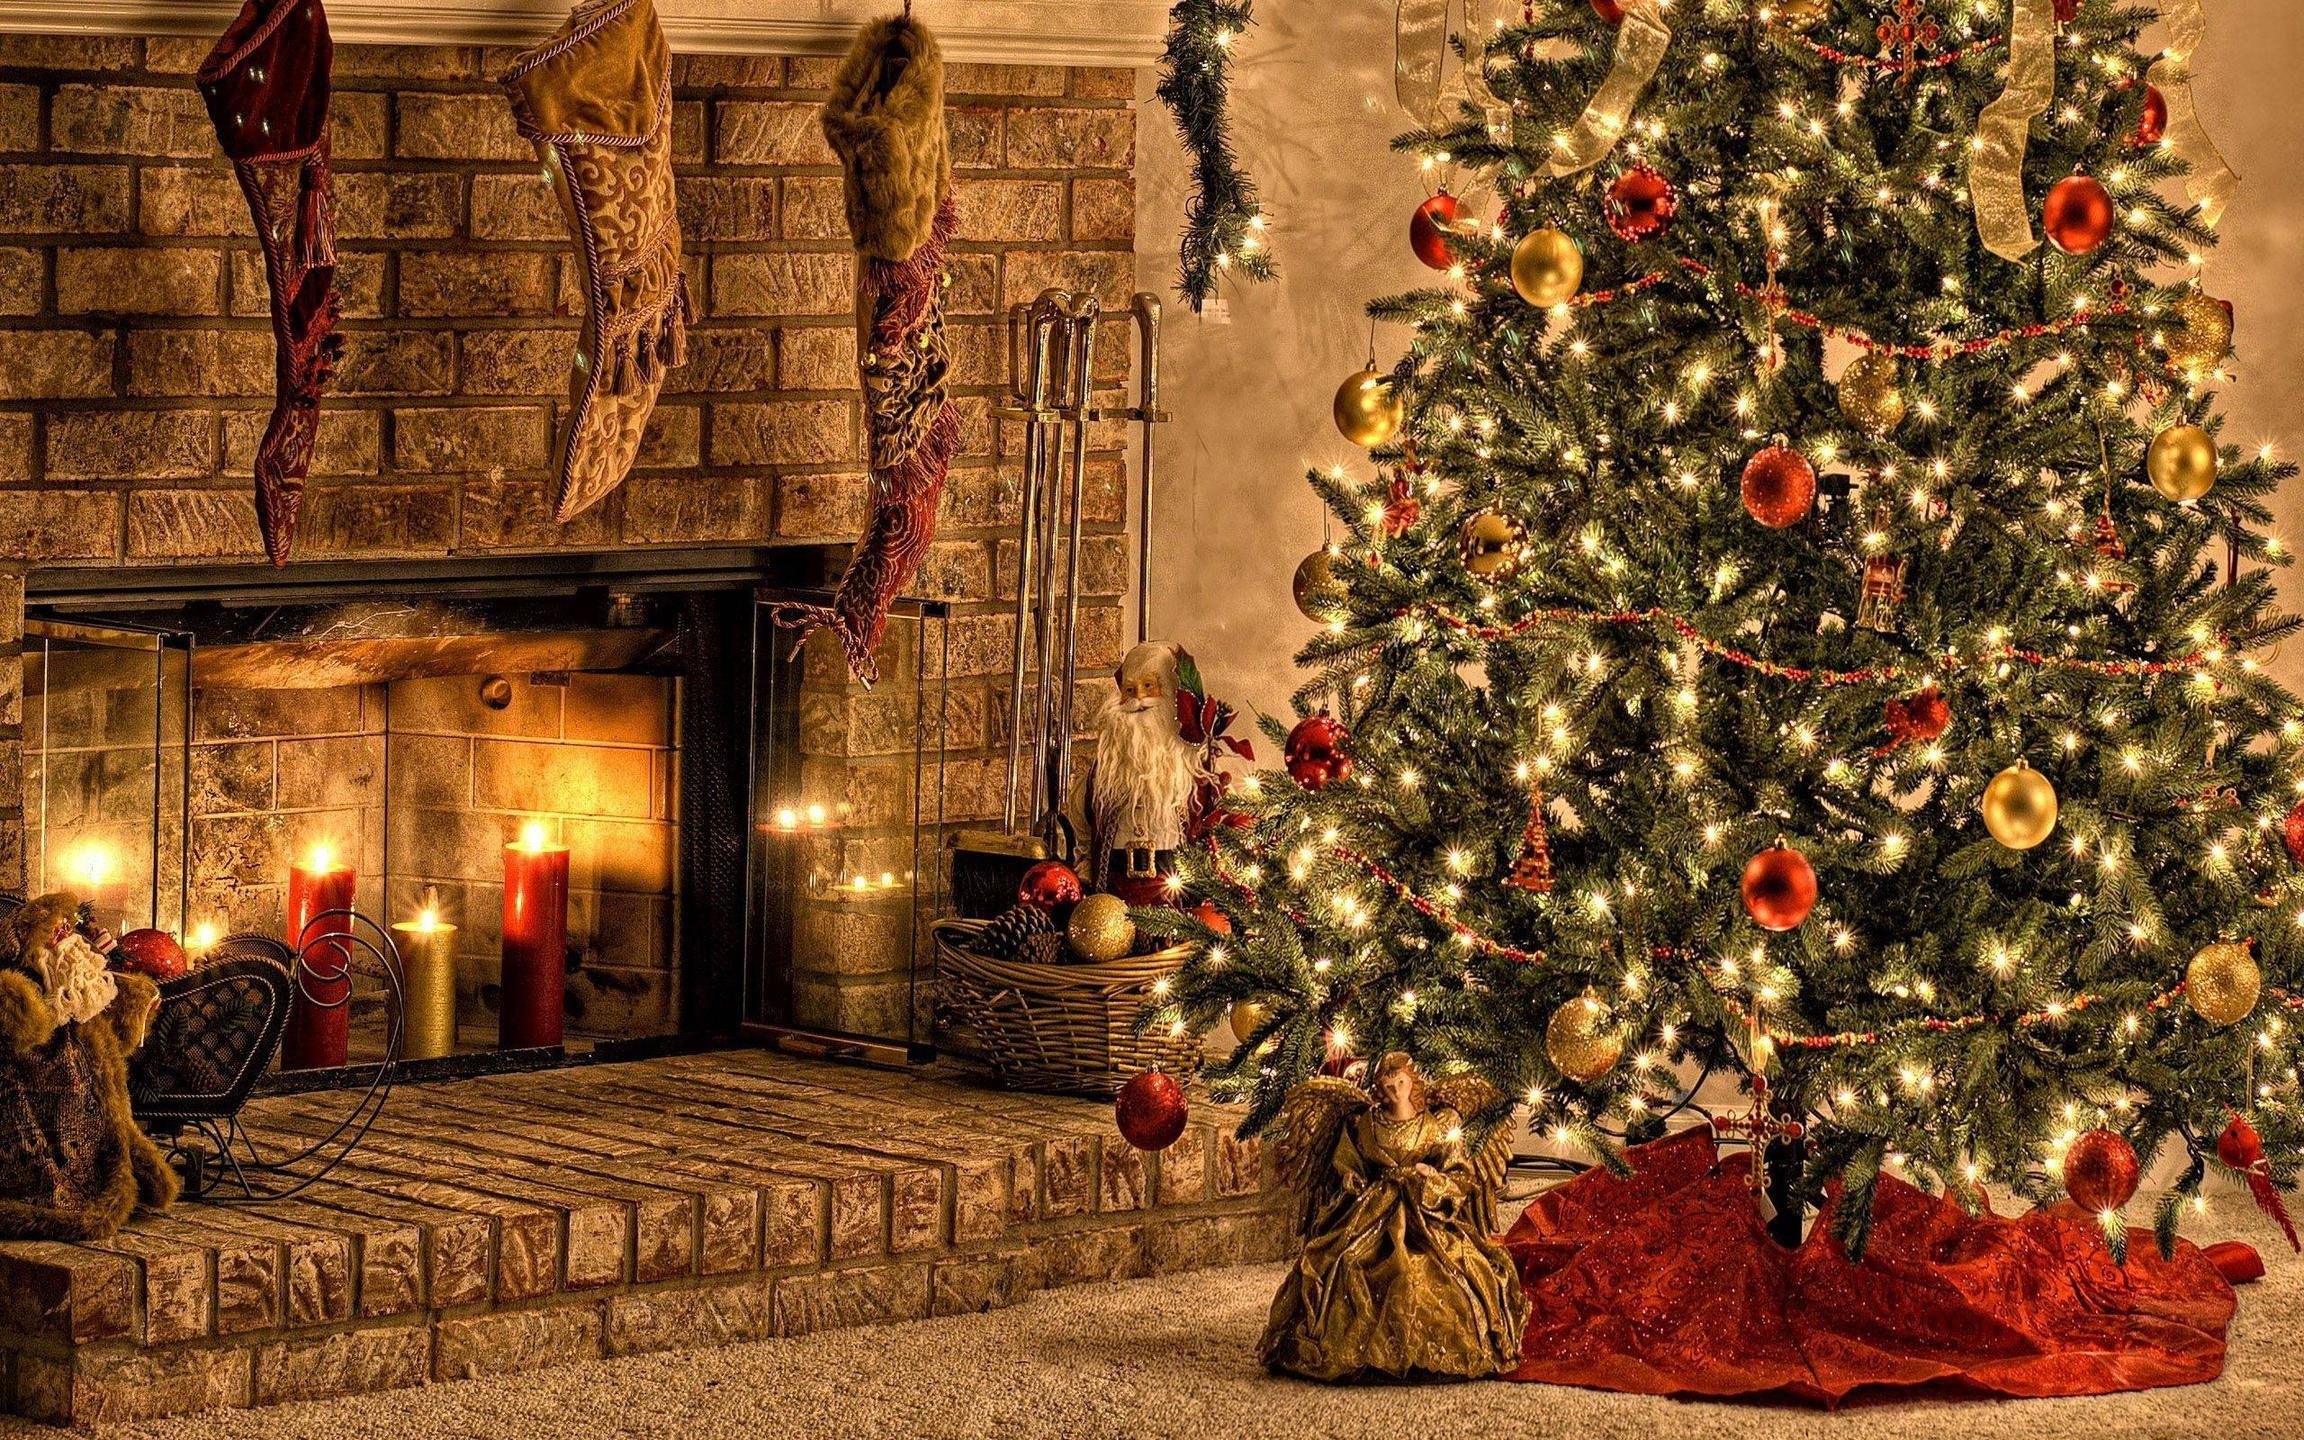 Country Christmas Background Wallpaper.Country Christmas Wallpapers 66 Images